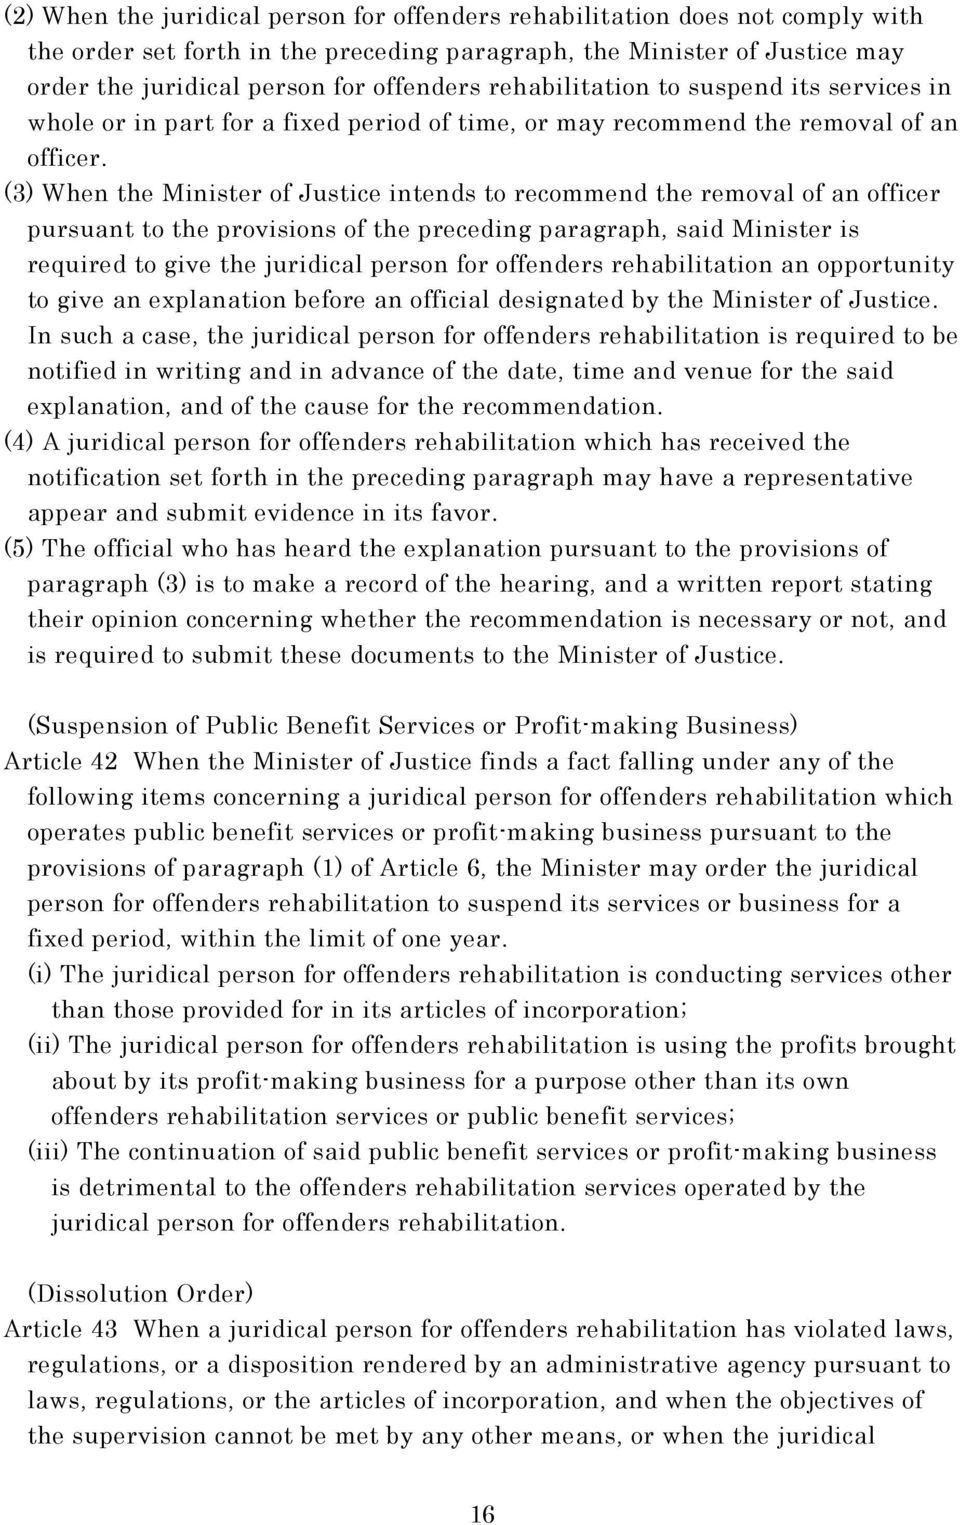 (3) When the Minister of Justice intends to recommend the removal of an officer pursuant to the provisions of the preceding paragraph, said Minister is required to give the juridical person for